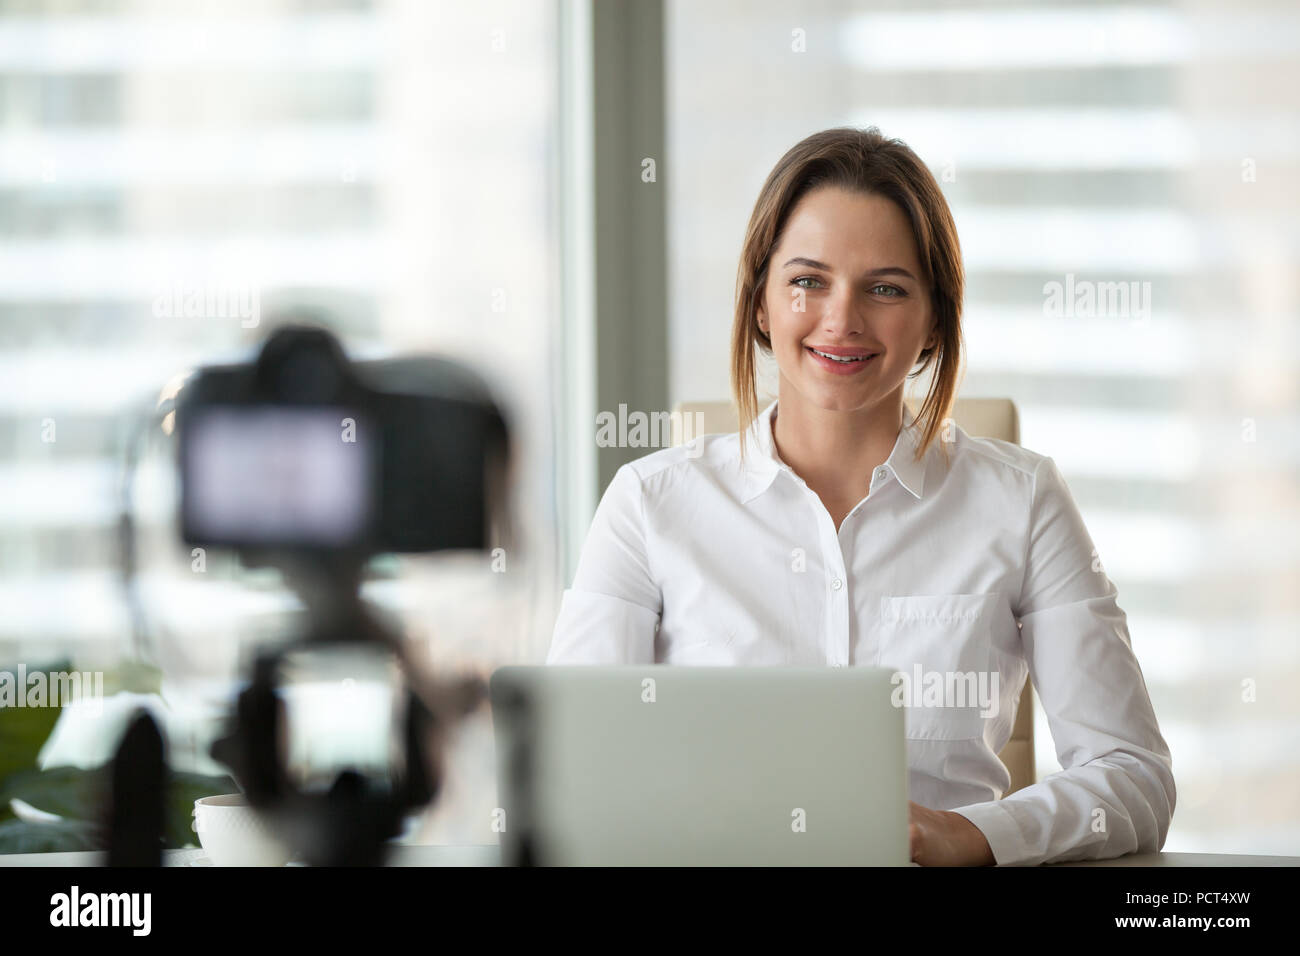 Confident businesswoman recording video course on camera - Stock Image